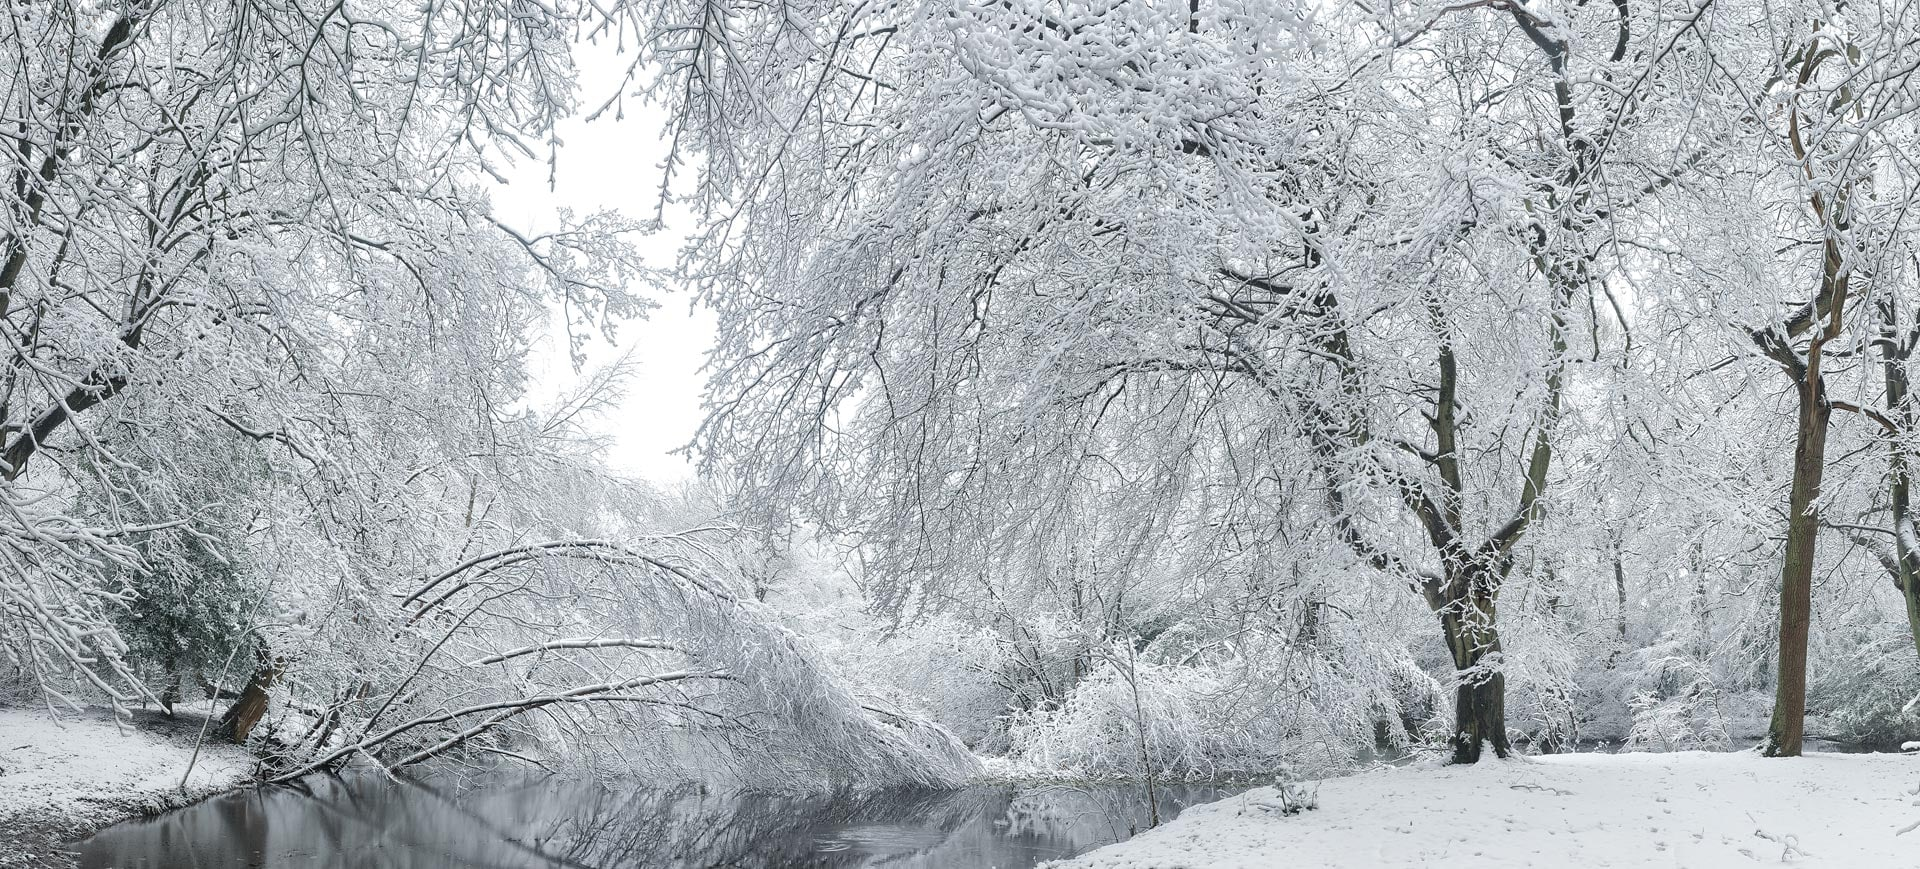 Snowy landscape, Epping Forest, Essex, England, UK